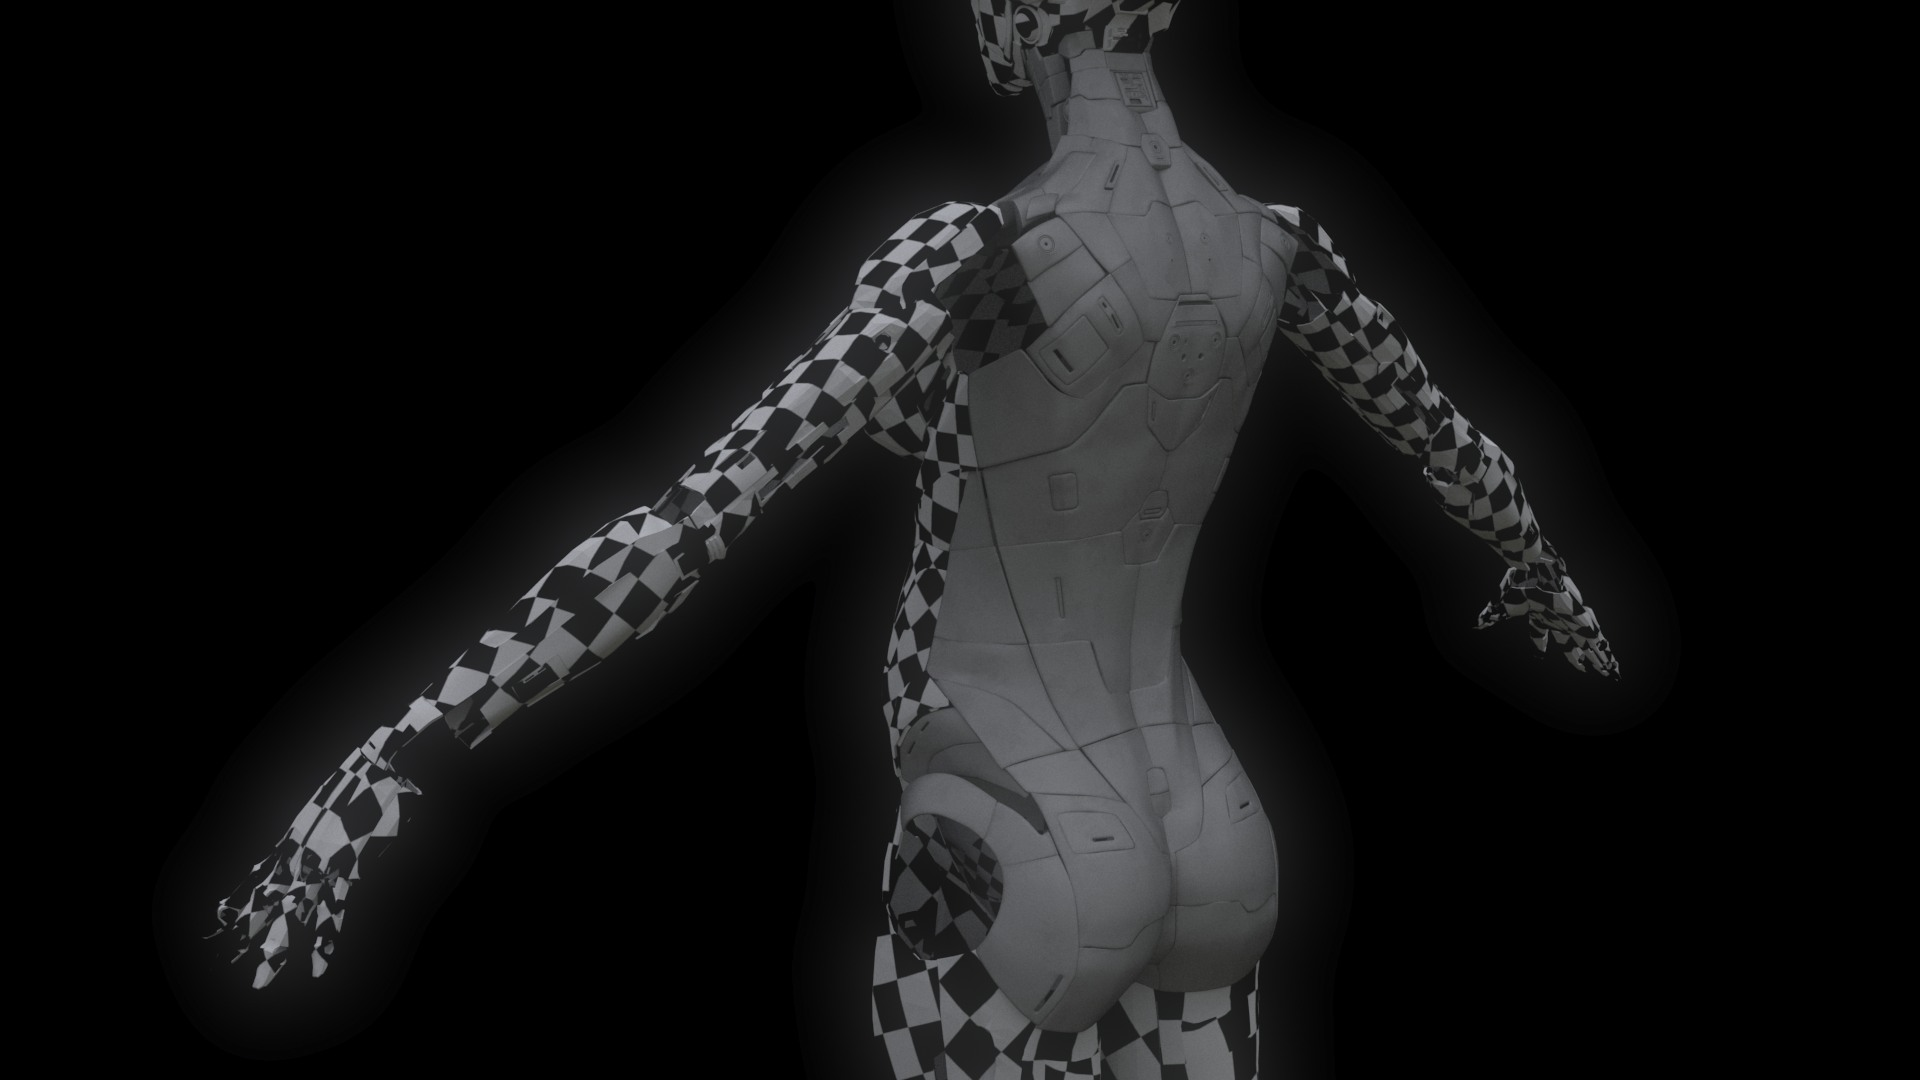 Base Layer Added. Rendered V-Ray 3DS Max